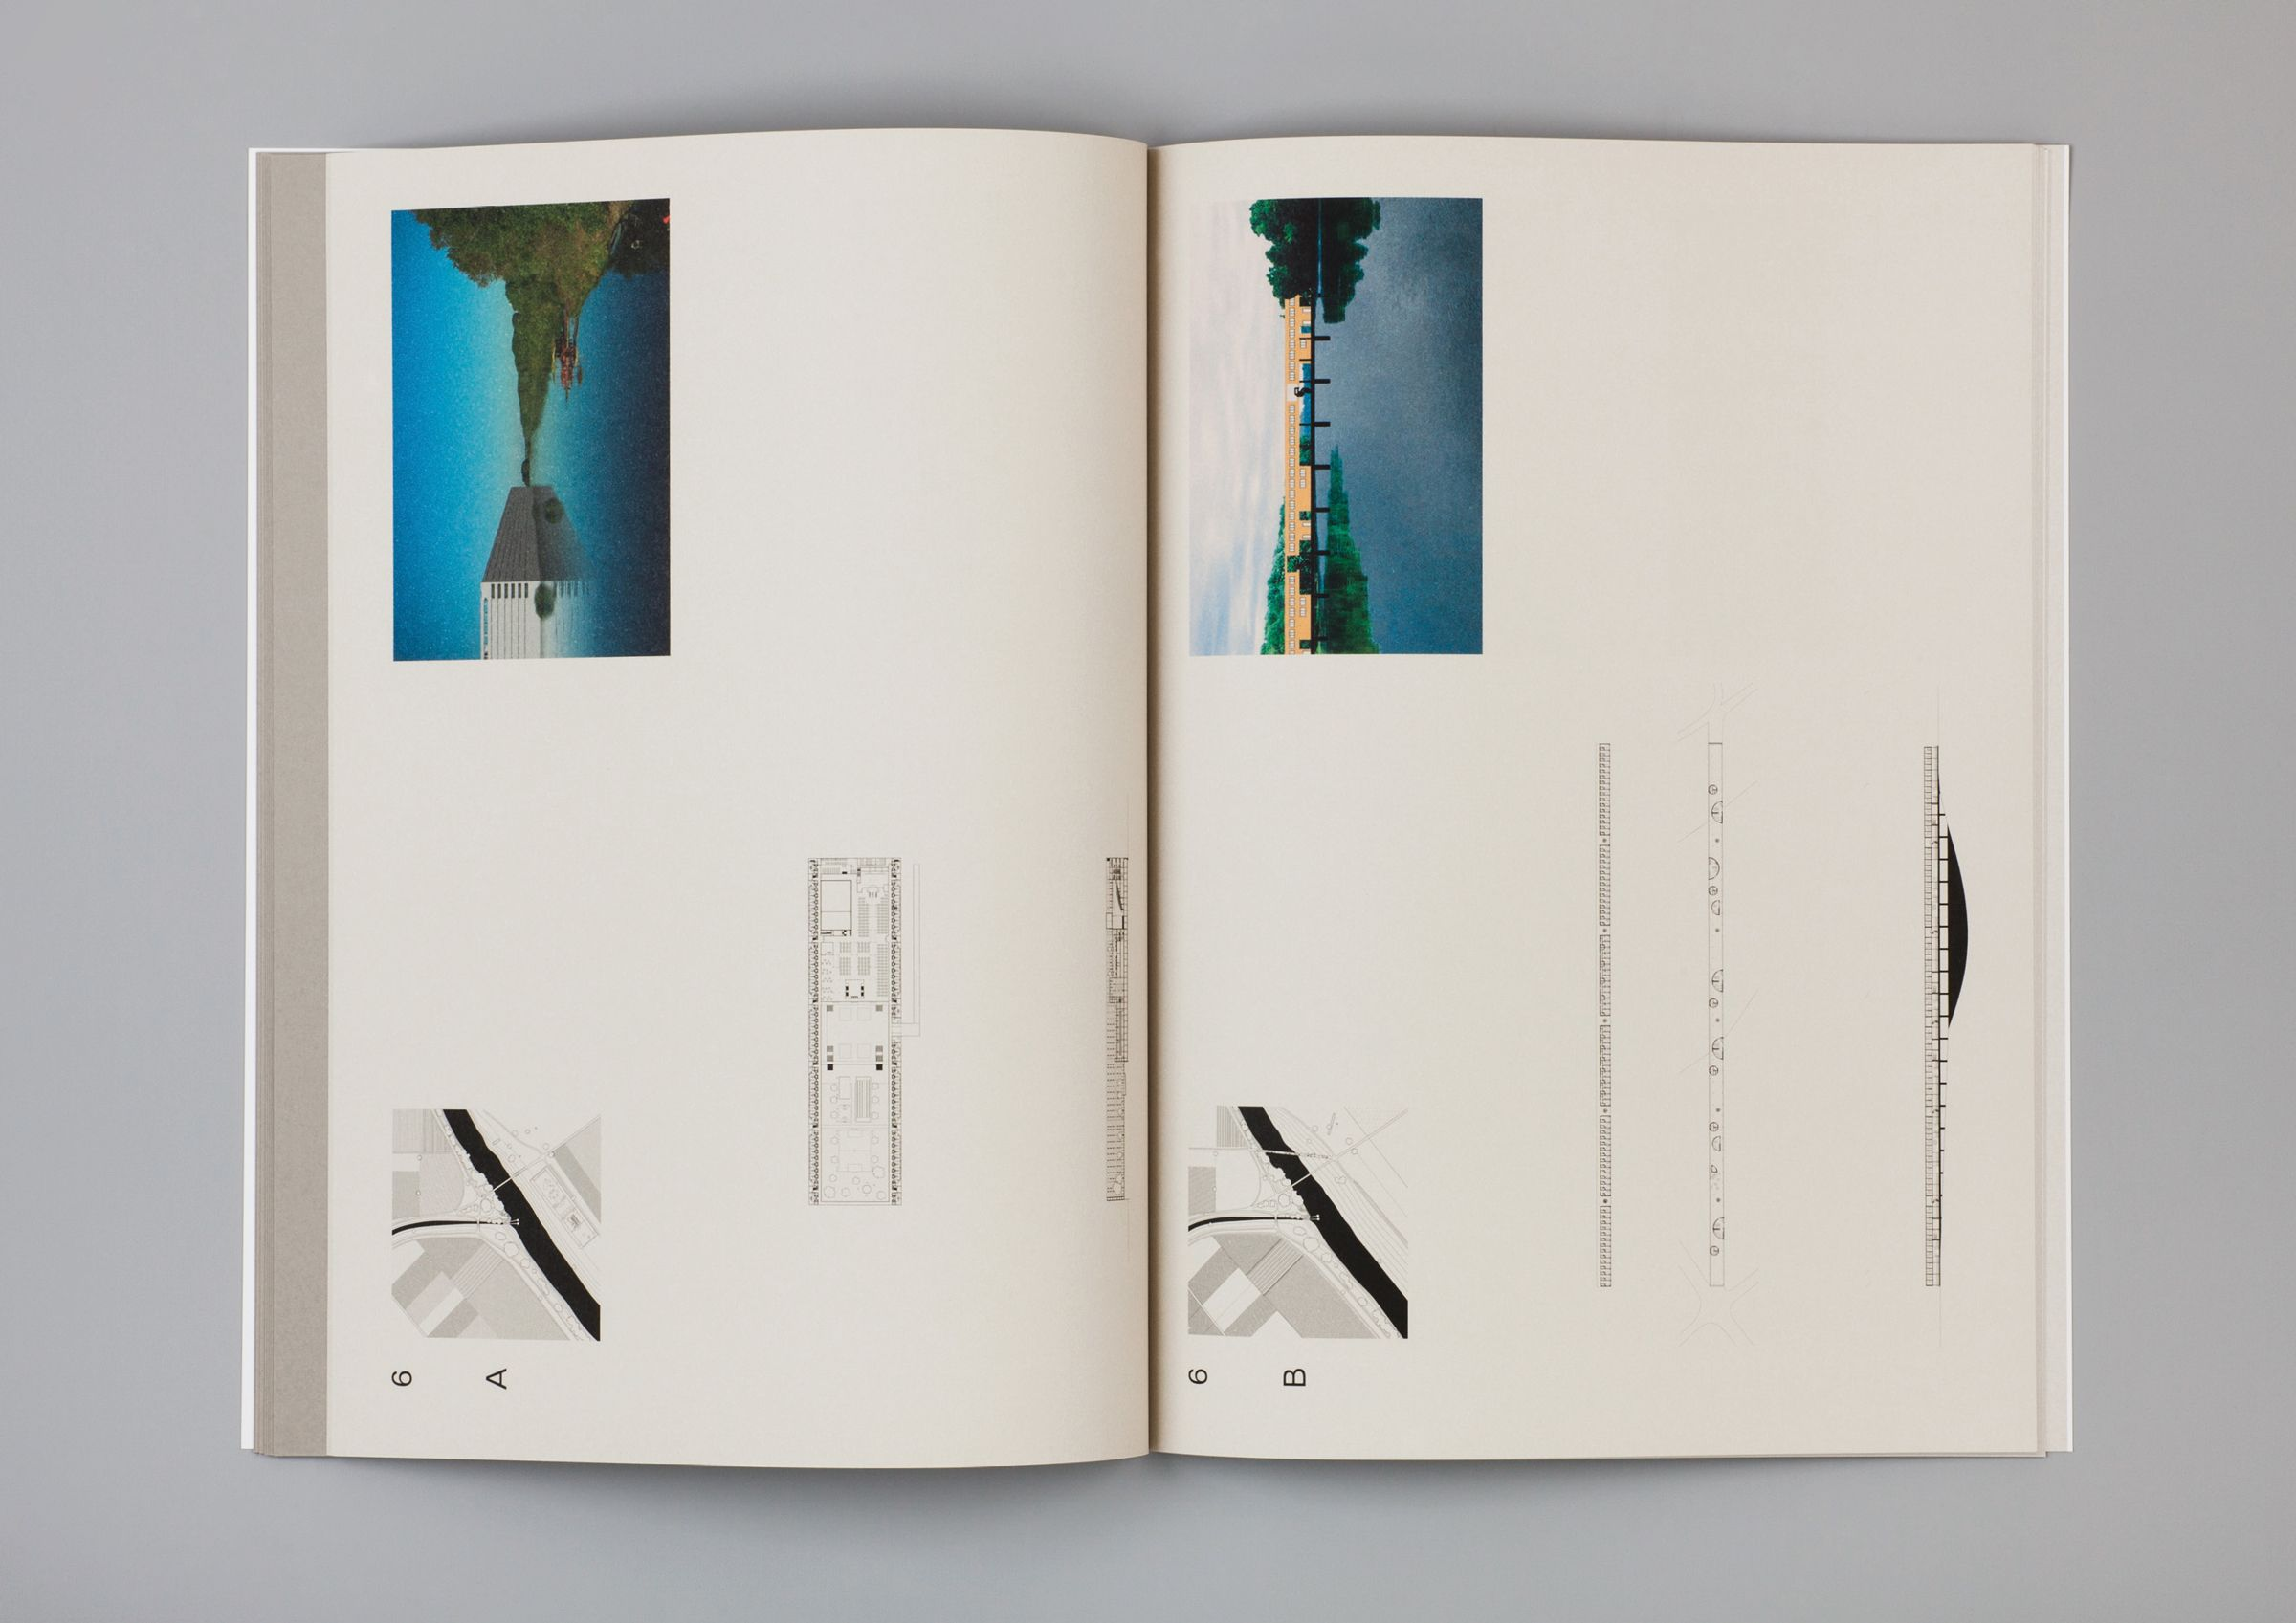 N°8, 'Temporary Residence', Studio report, 'Architecture